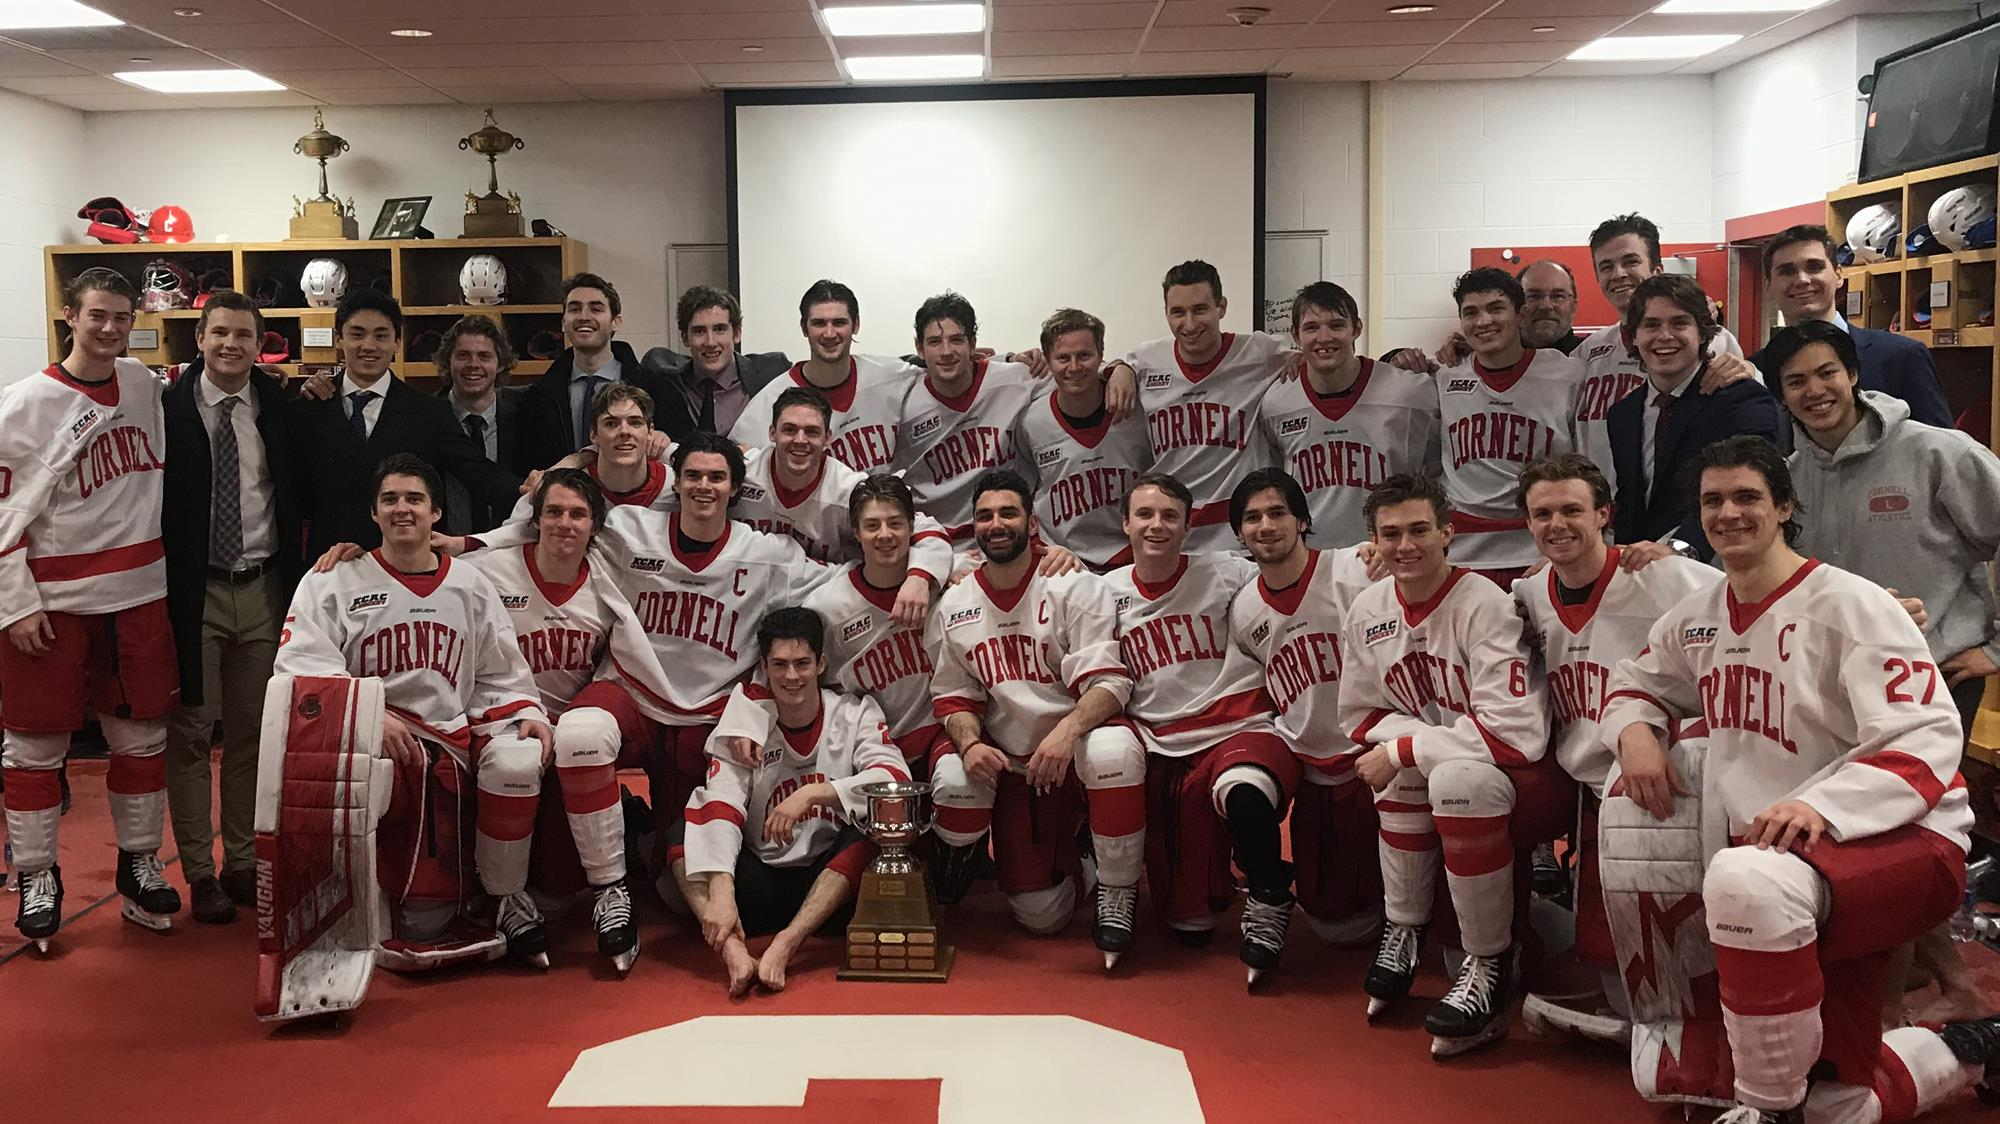 The Cornell men's hockey team celebrates winning the Cleary Cup on Feb. 28, 2020 after a 5-0 rout of St. Lawrence at Lynah Rink in Ithaca, N.Y.